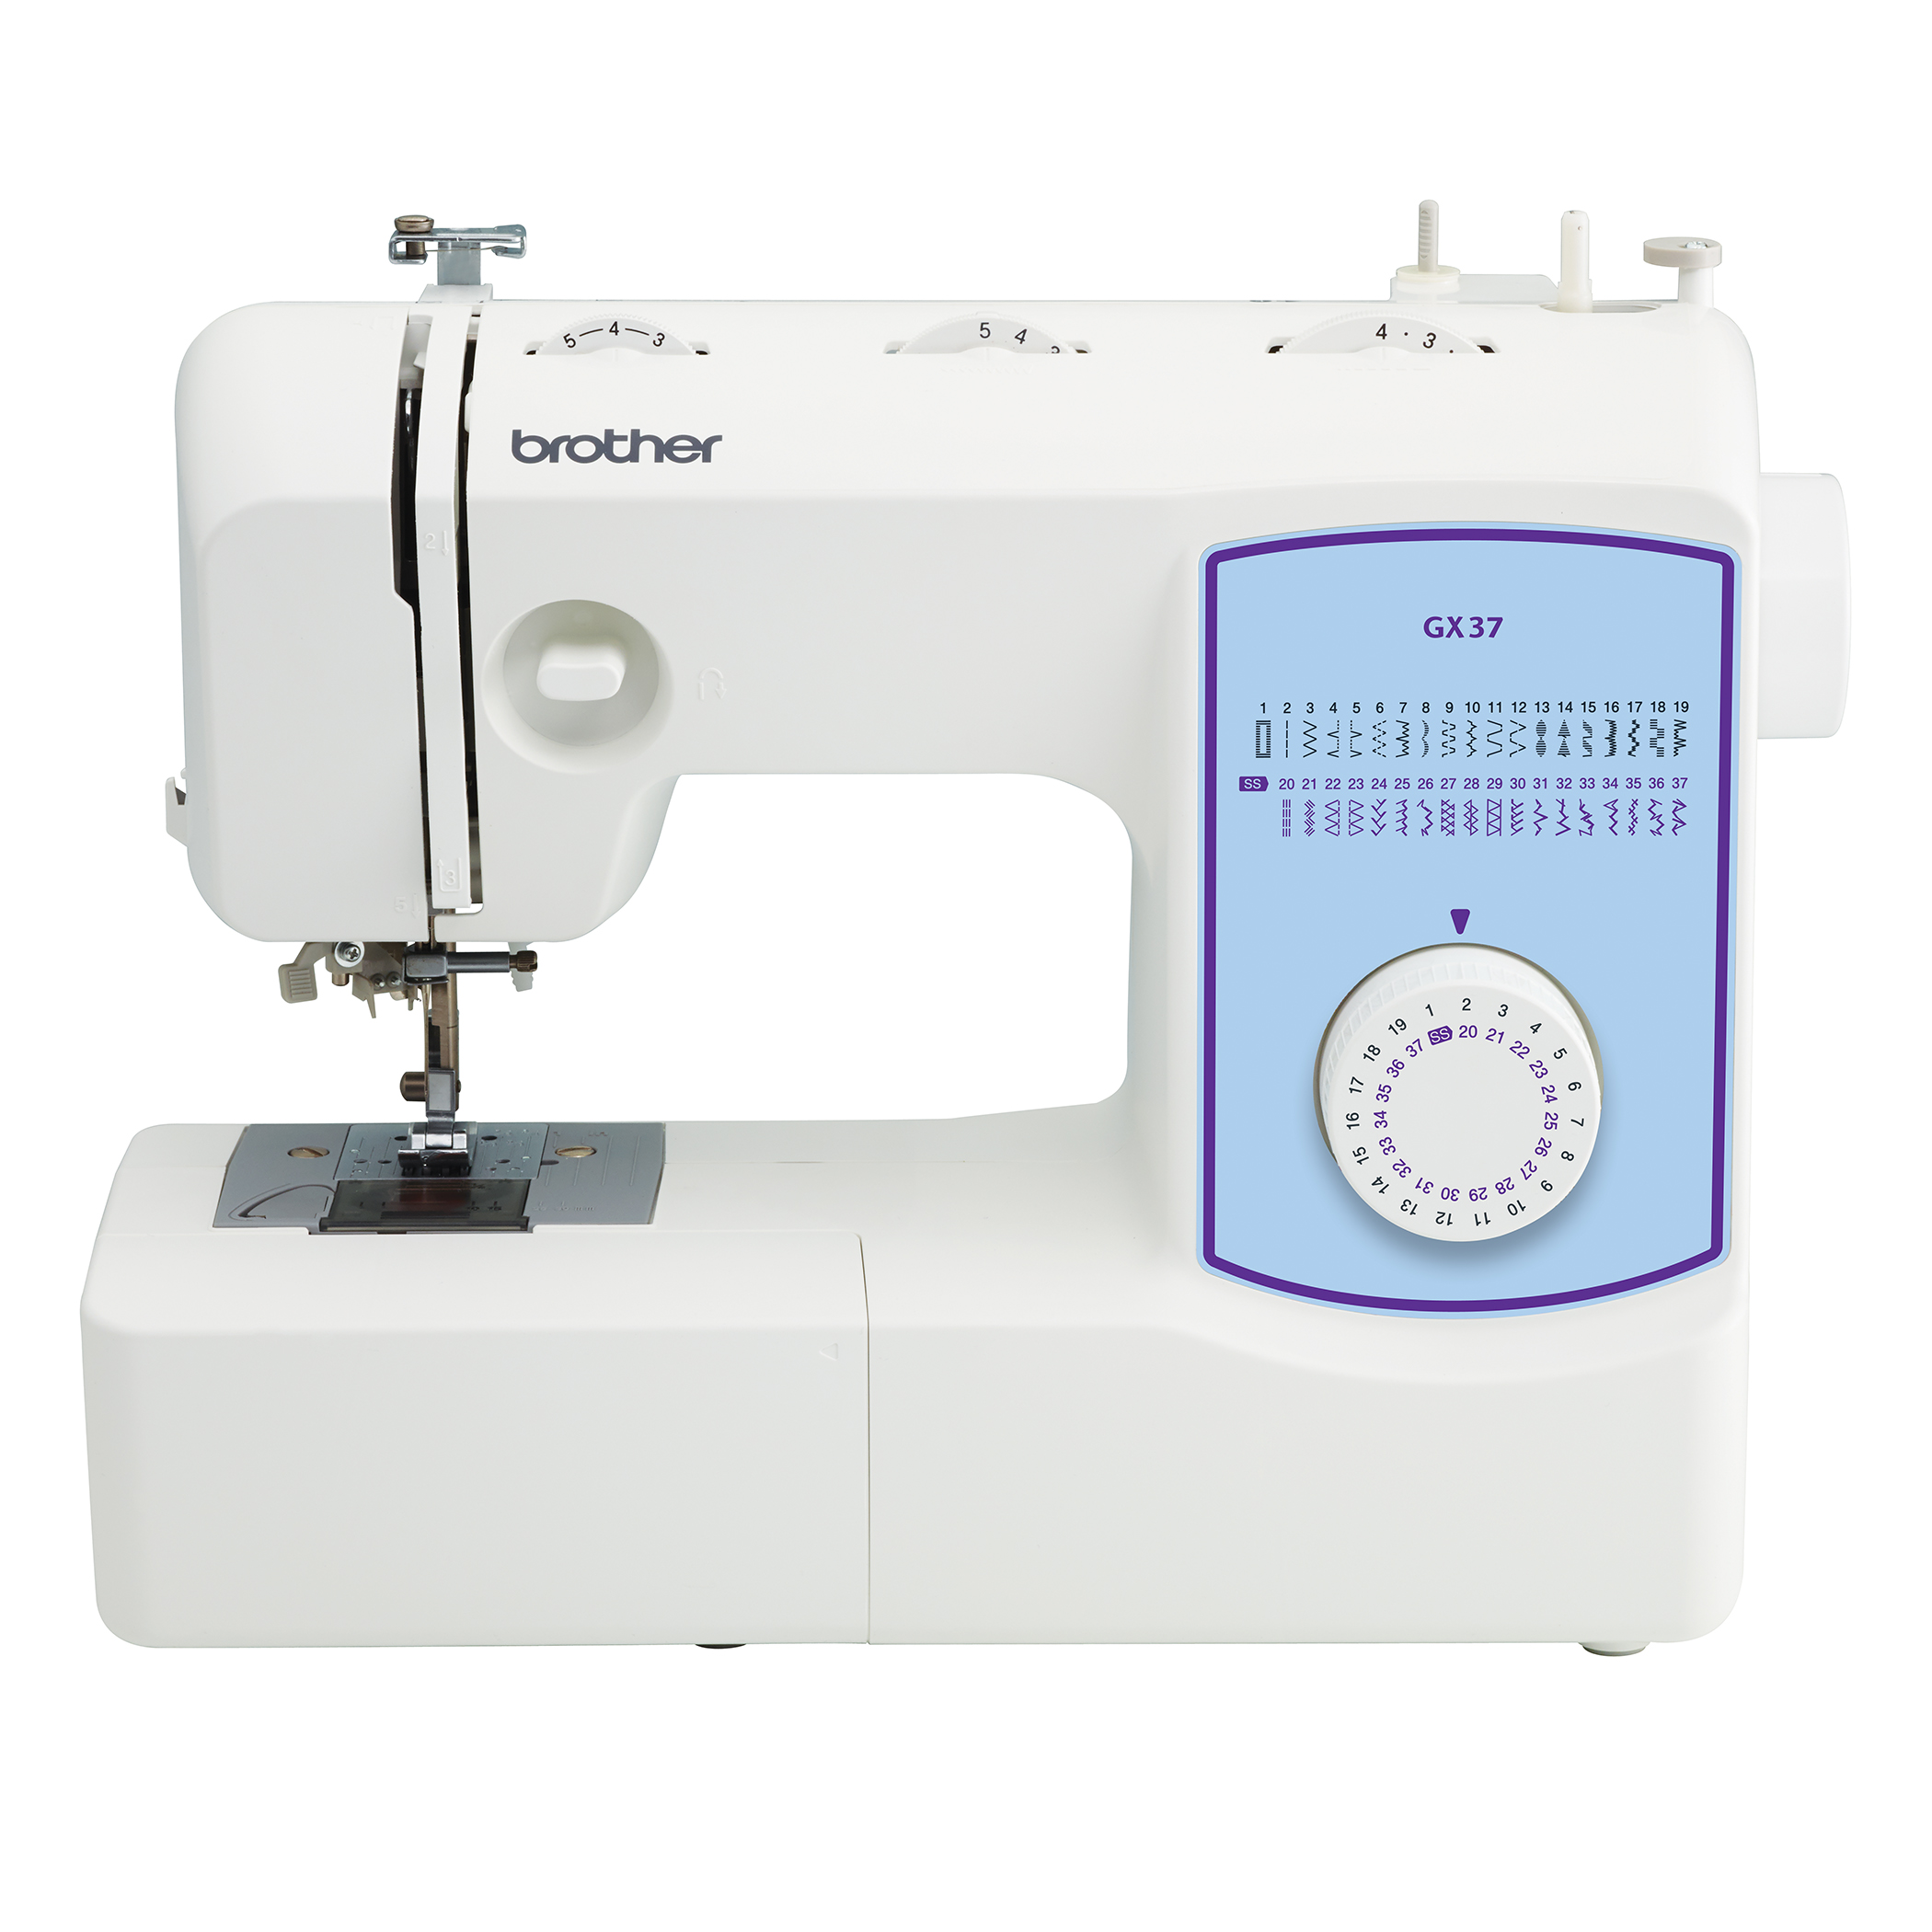 Brother Gx37 Lightweight Full Featured Sewing Machine With 37 Built